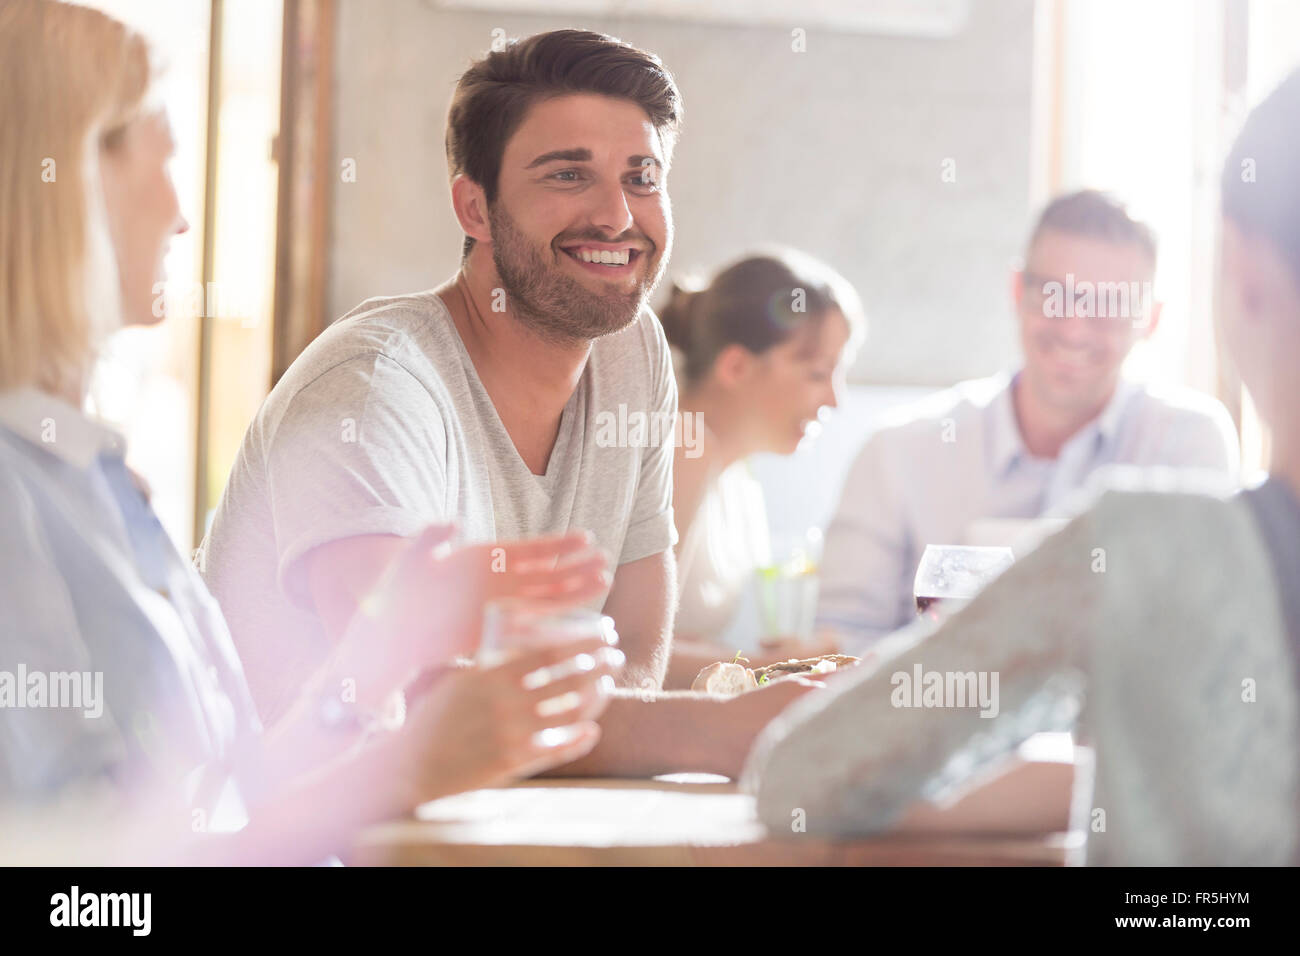 Smiling man with friends at cafe - Stock Image